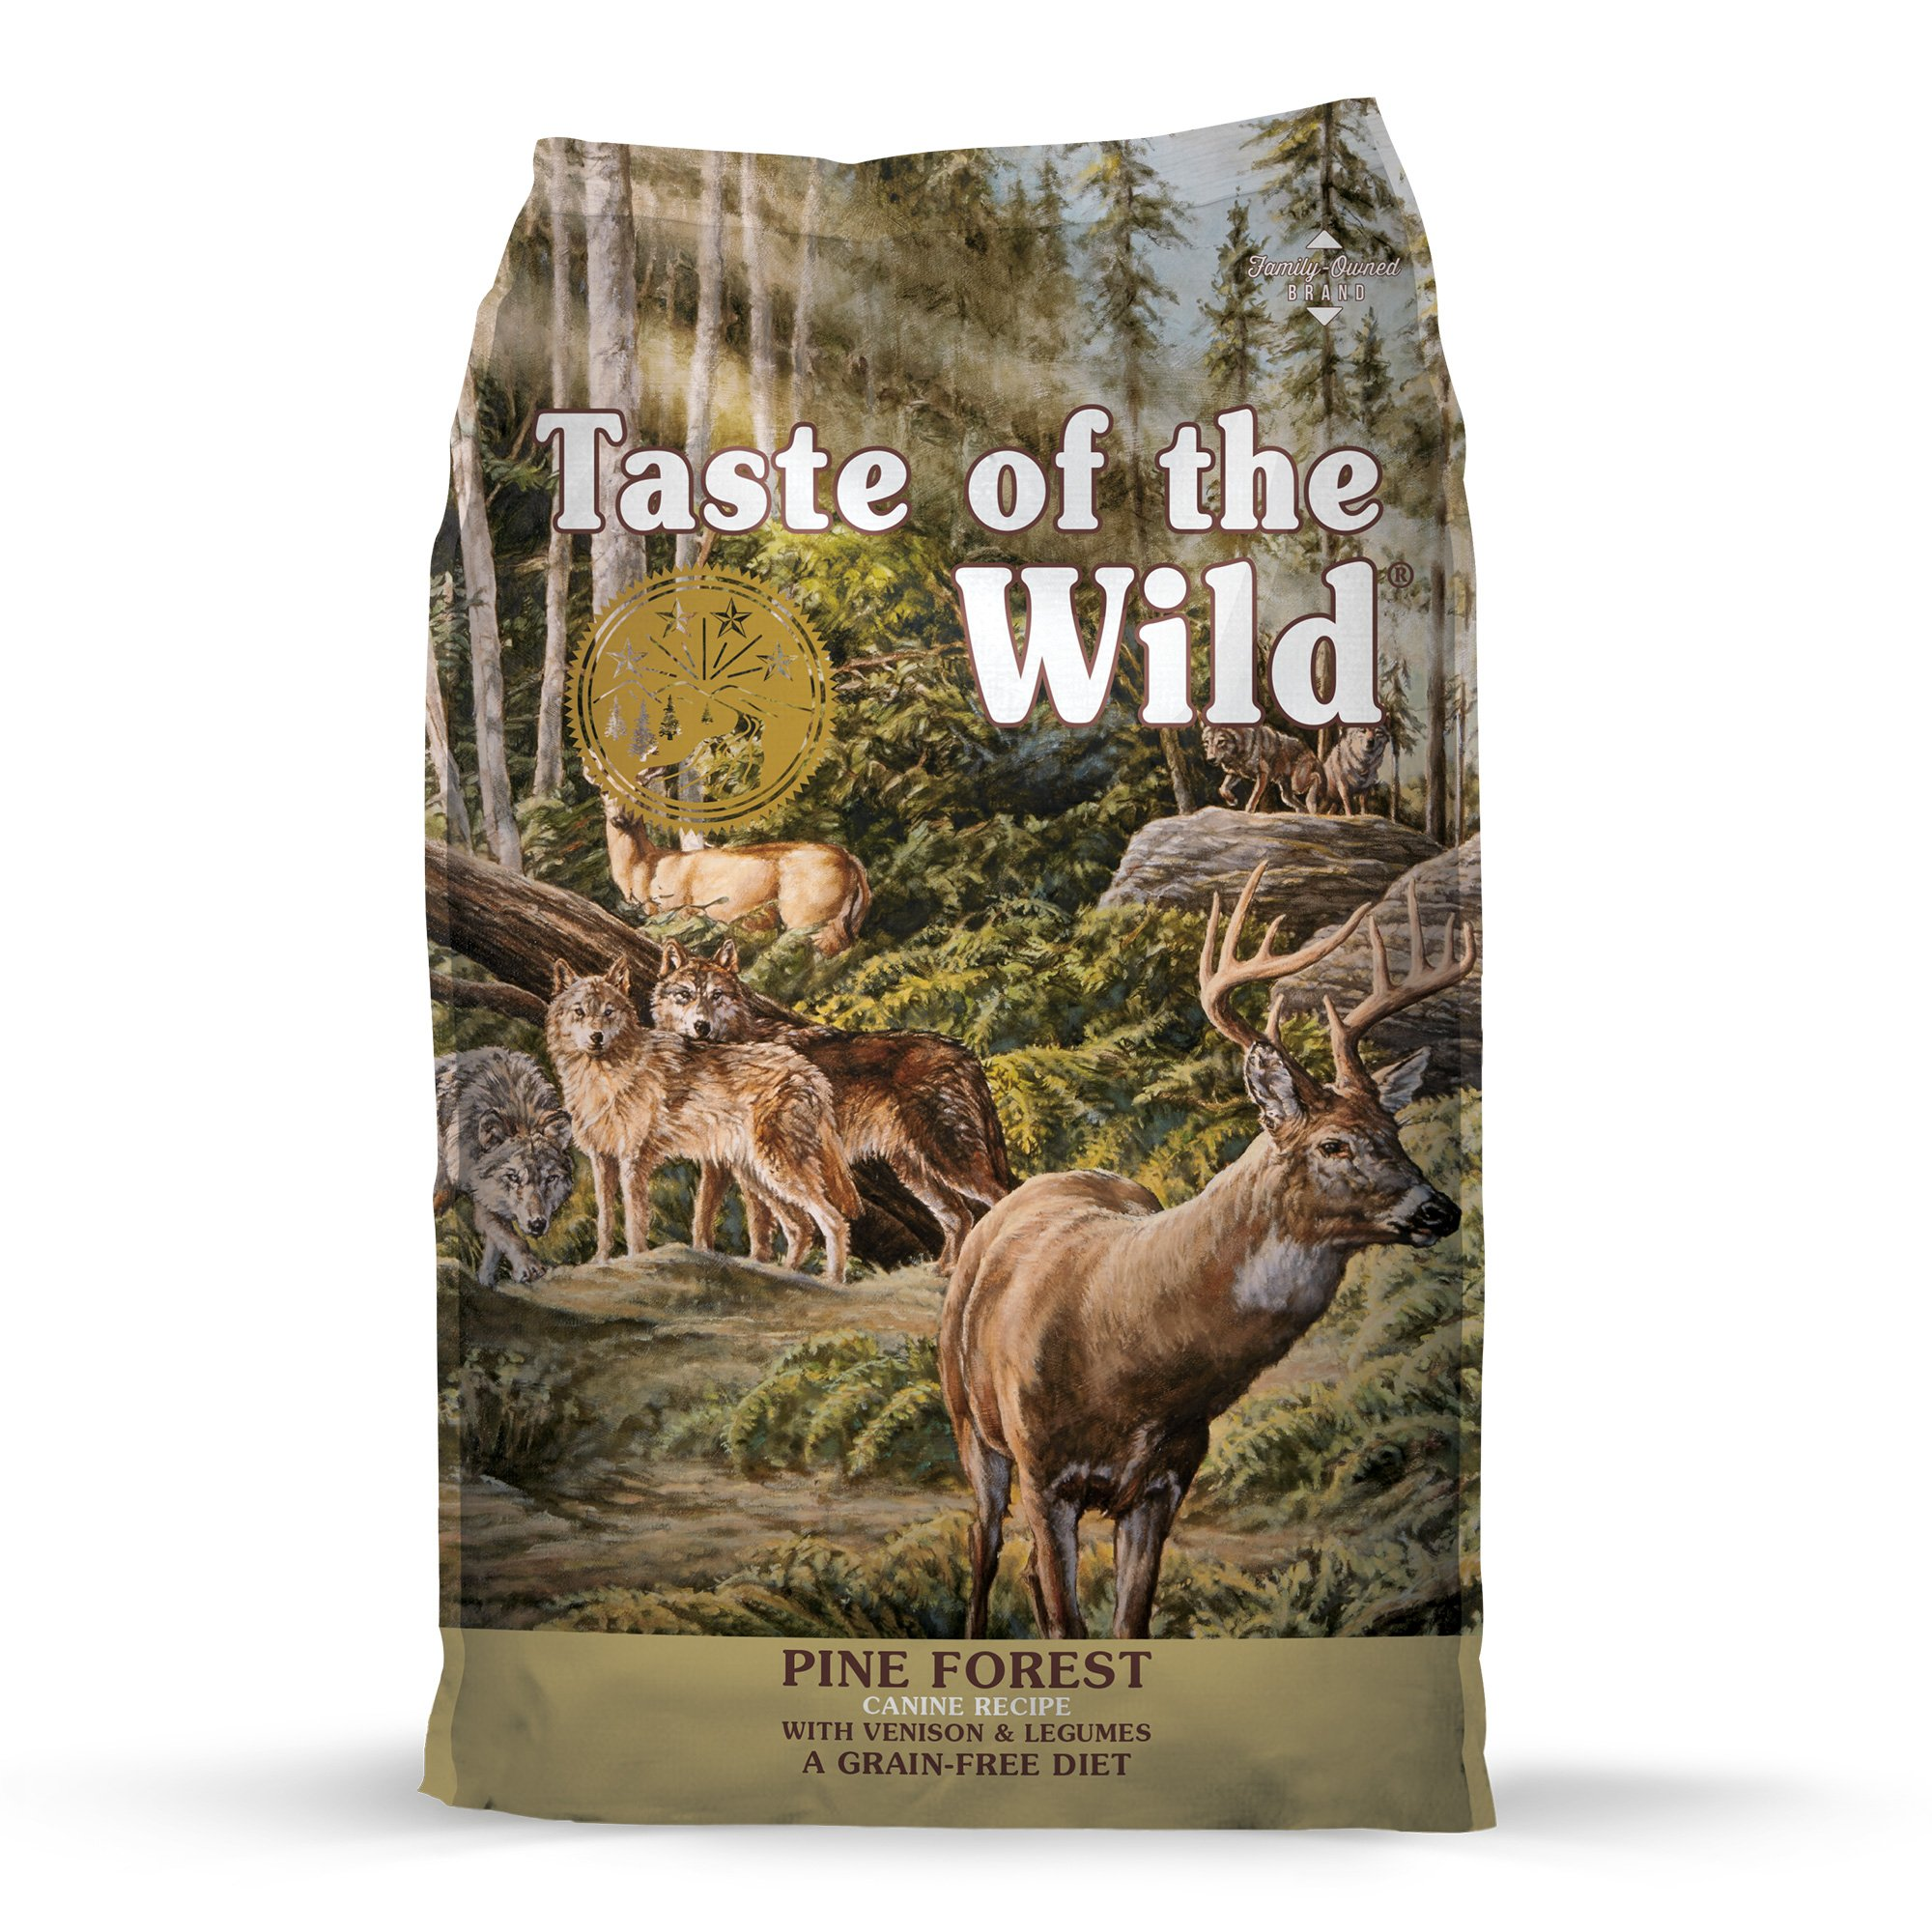 Taste of the Wild Pine Forest Grain-Free Roasted Venison Dry Dog Food, 5 lbs.